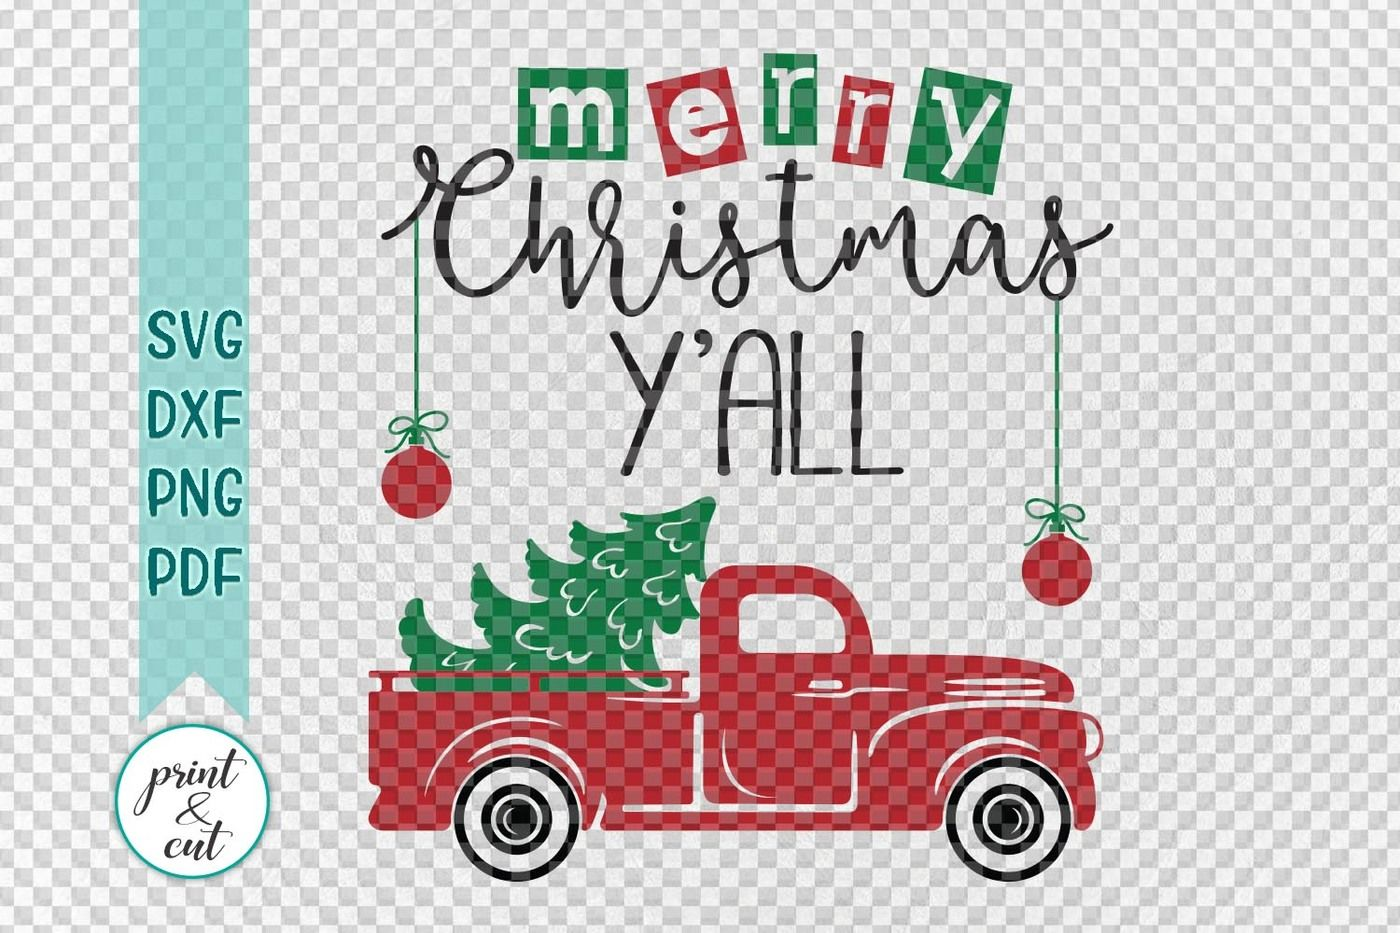 Merry Christmas Y All Truck Svg Dxf Files For Vinyl Htv Cut By